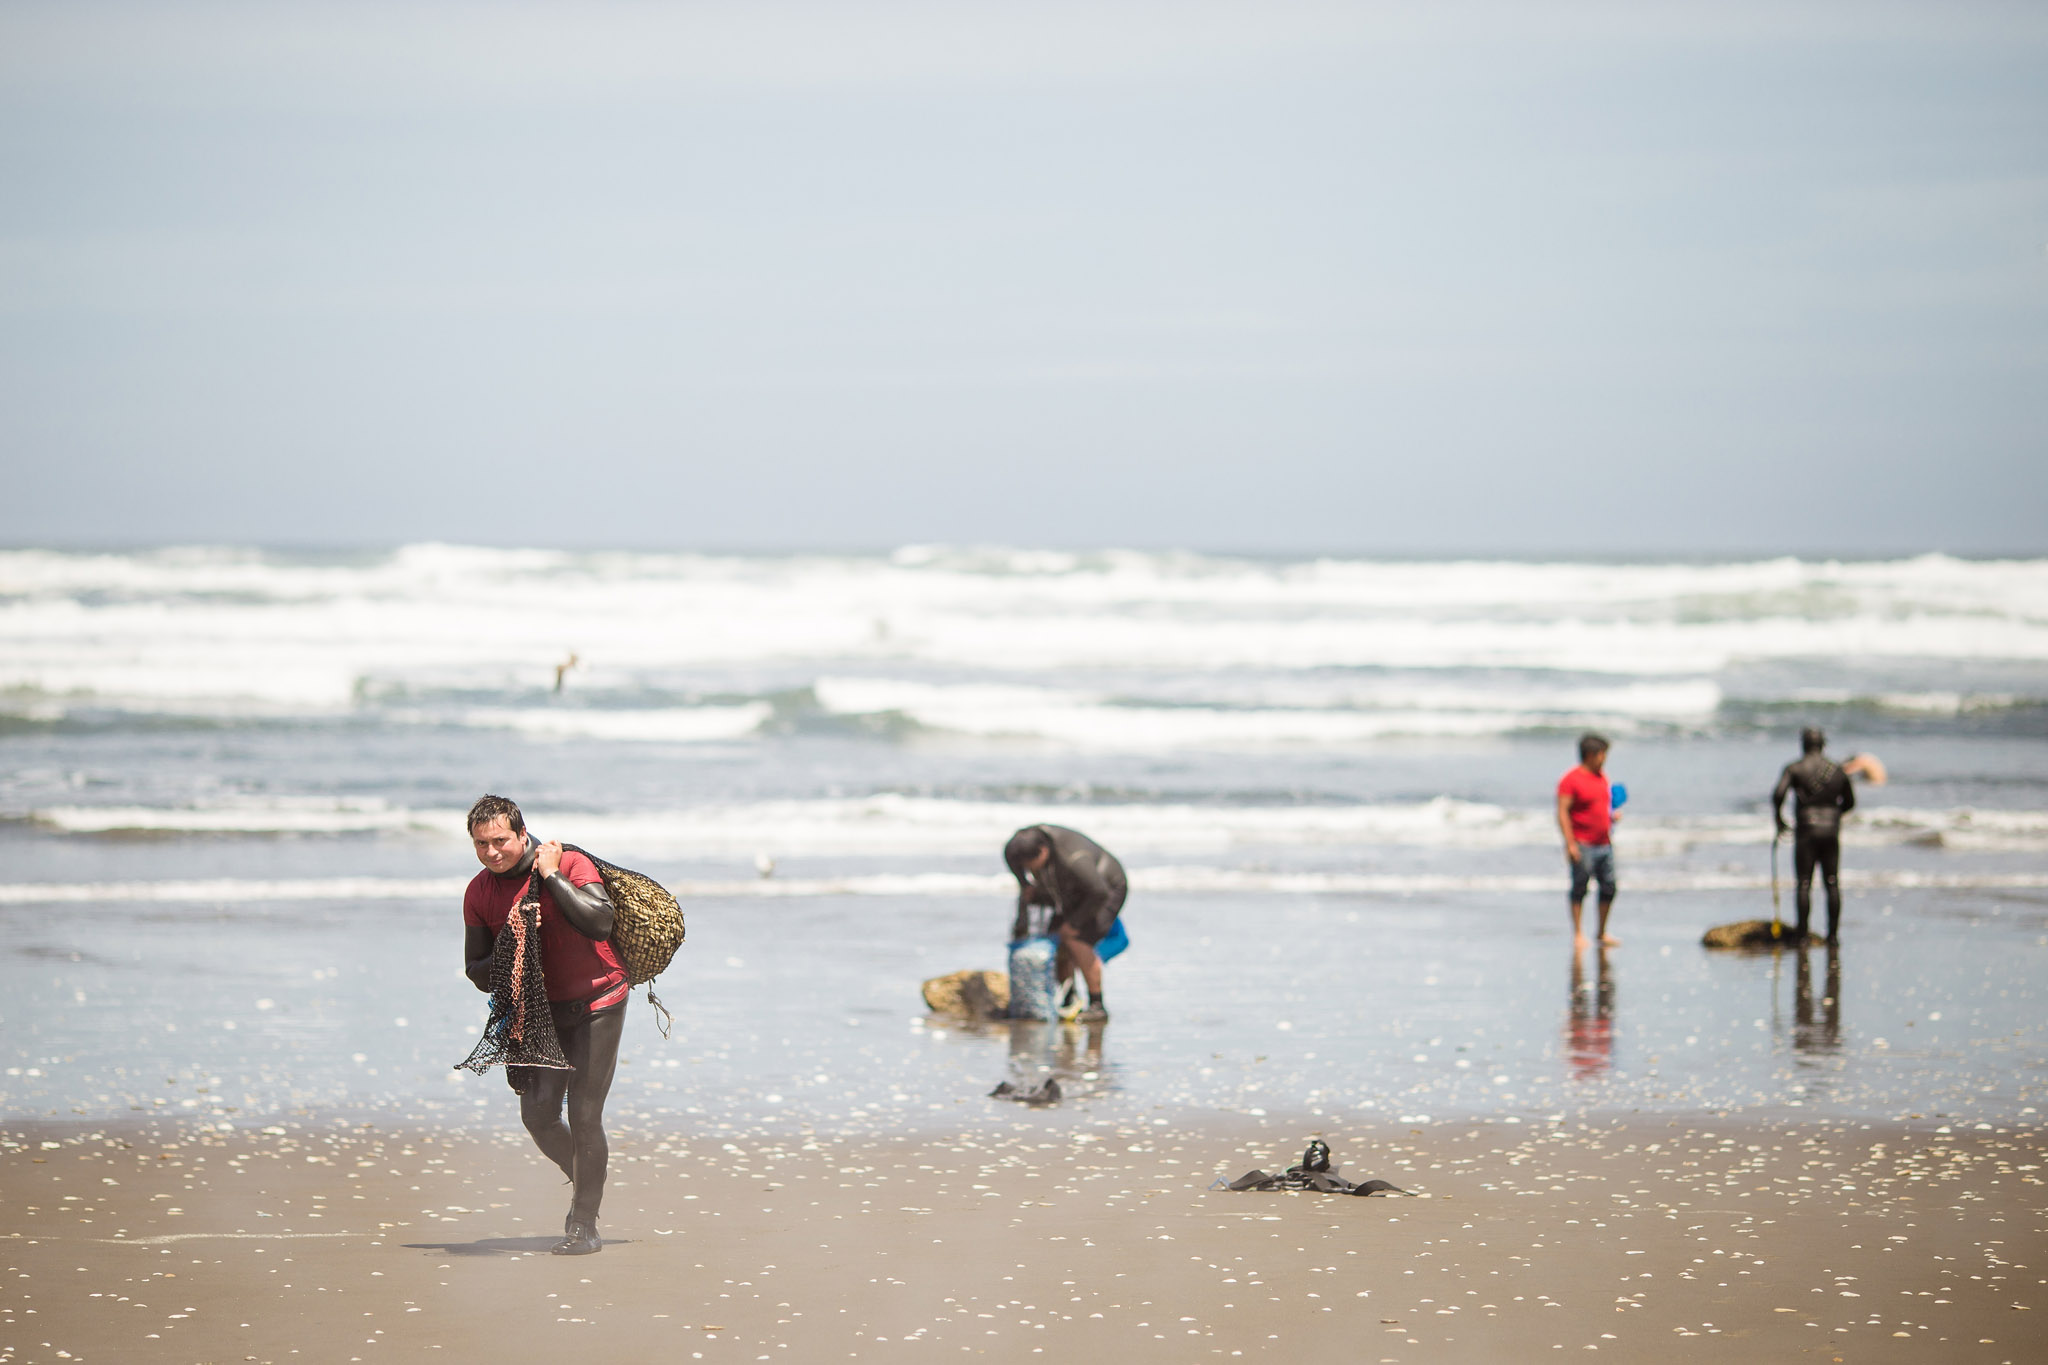 chile-chiloe-fishermen-beach-ocean-3